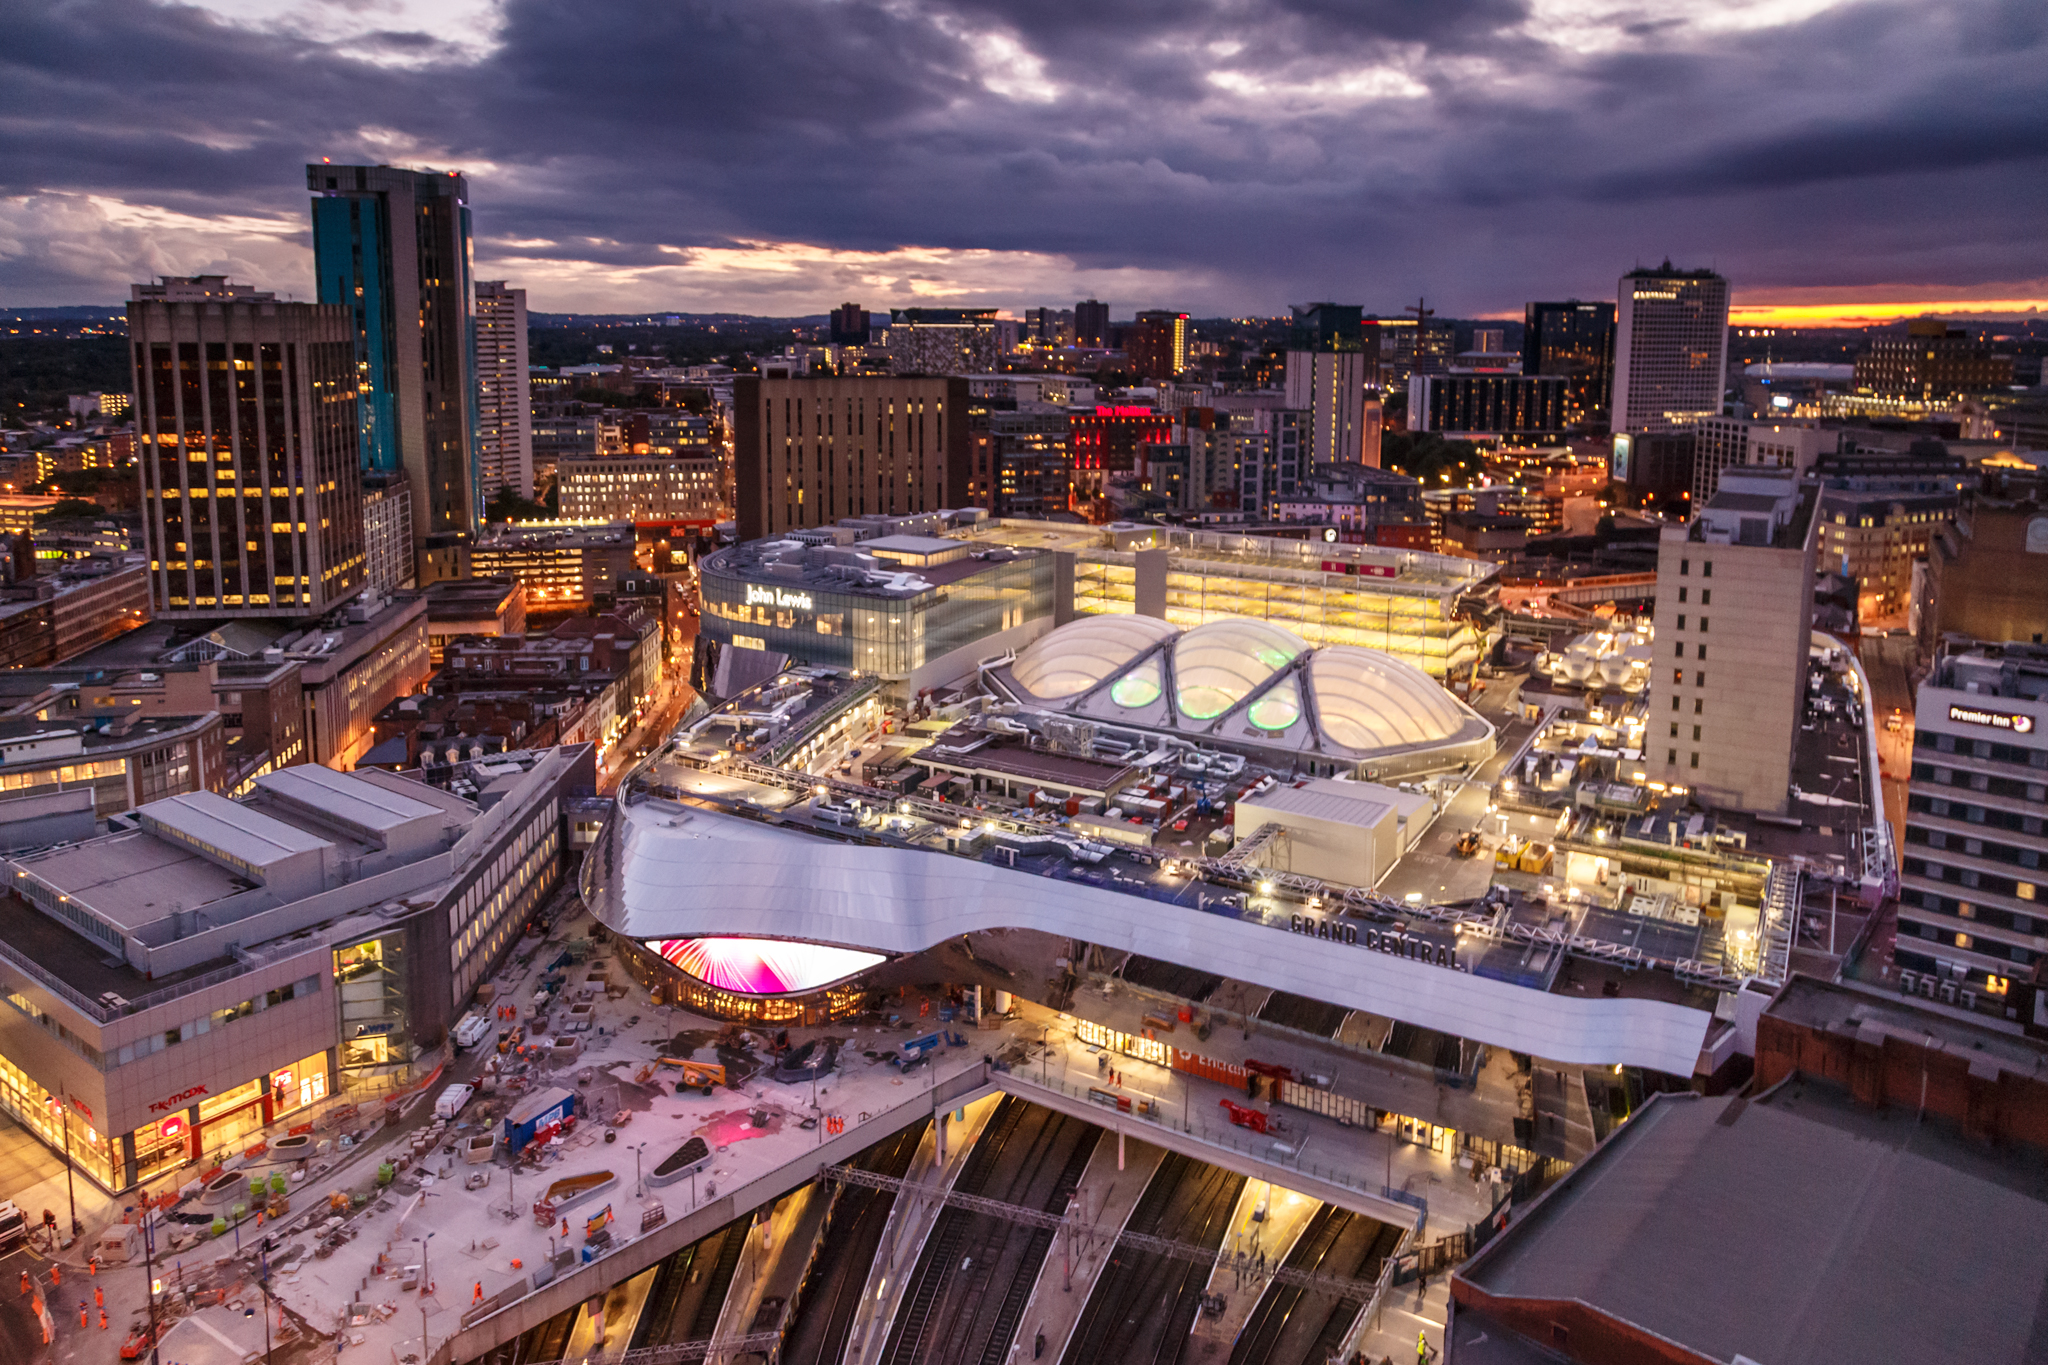 New Birmingham New Street Station as viewed from above - by Ross Jukes Photography